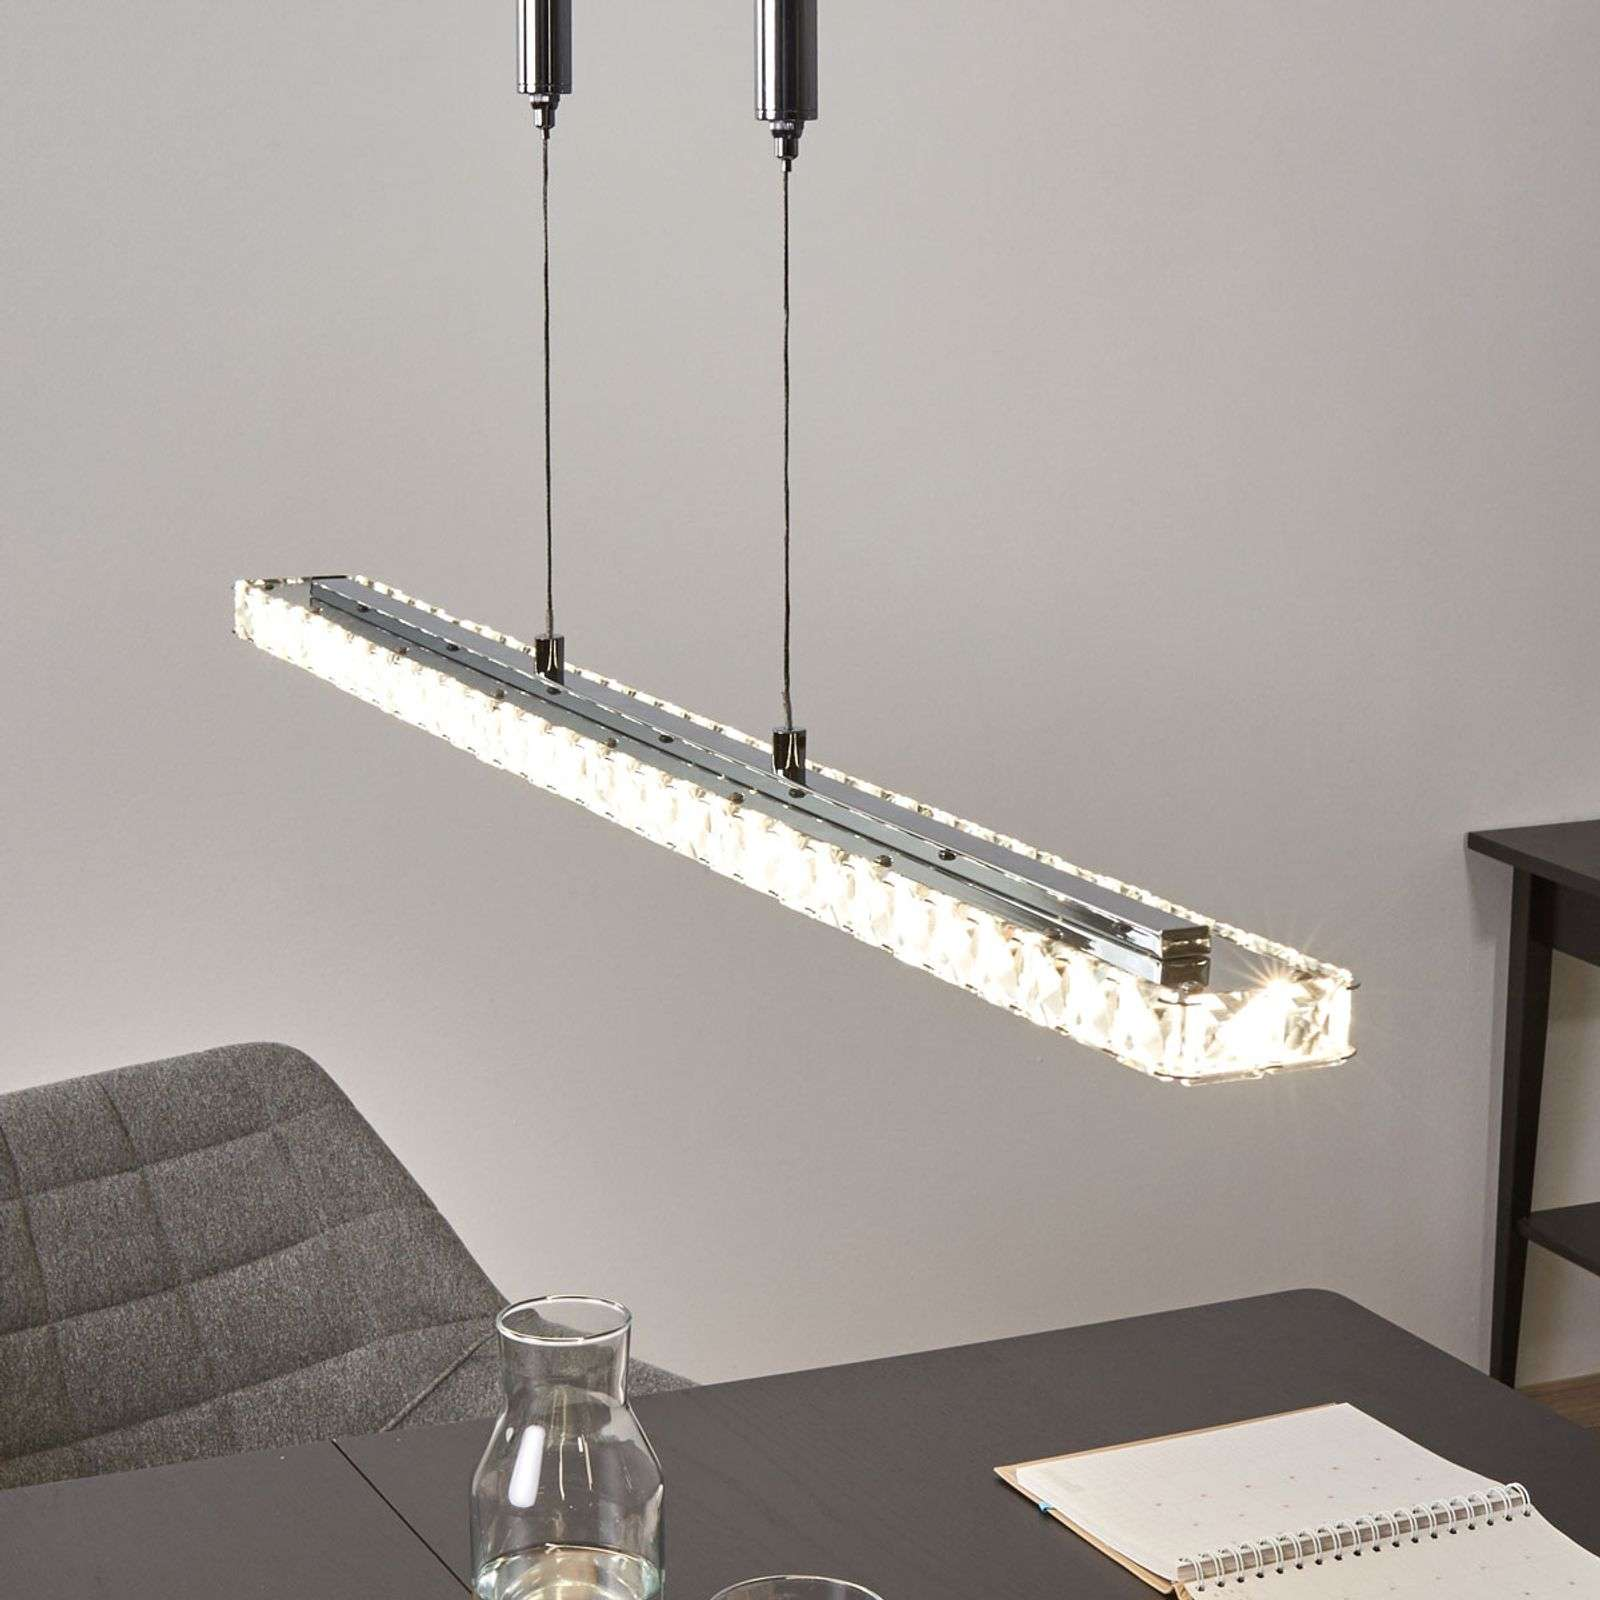 Suspension en cristal LED Sesilia hauteur réglable